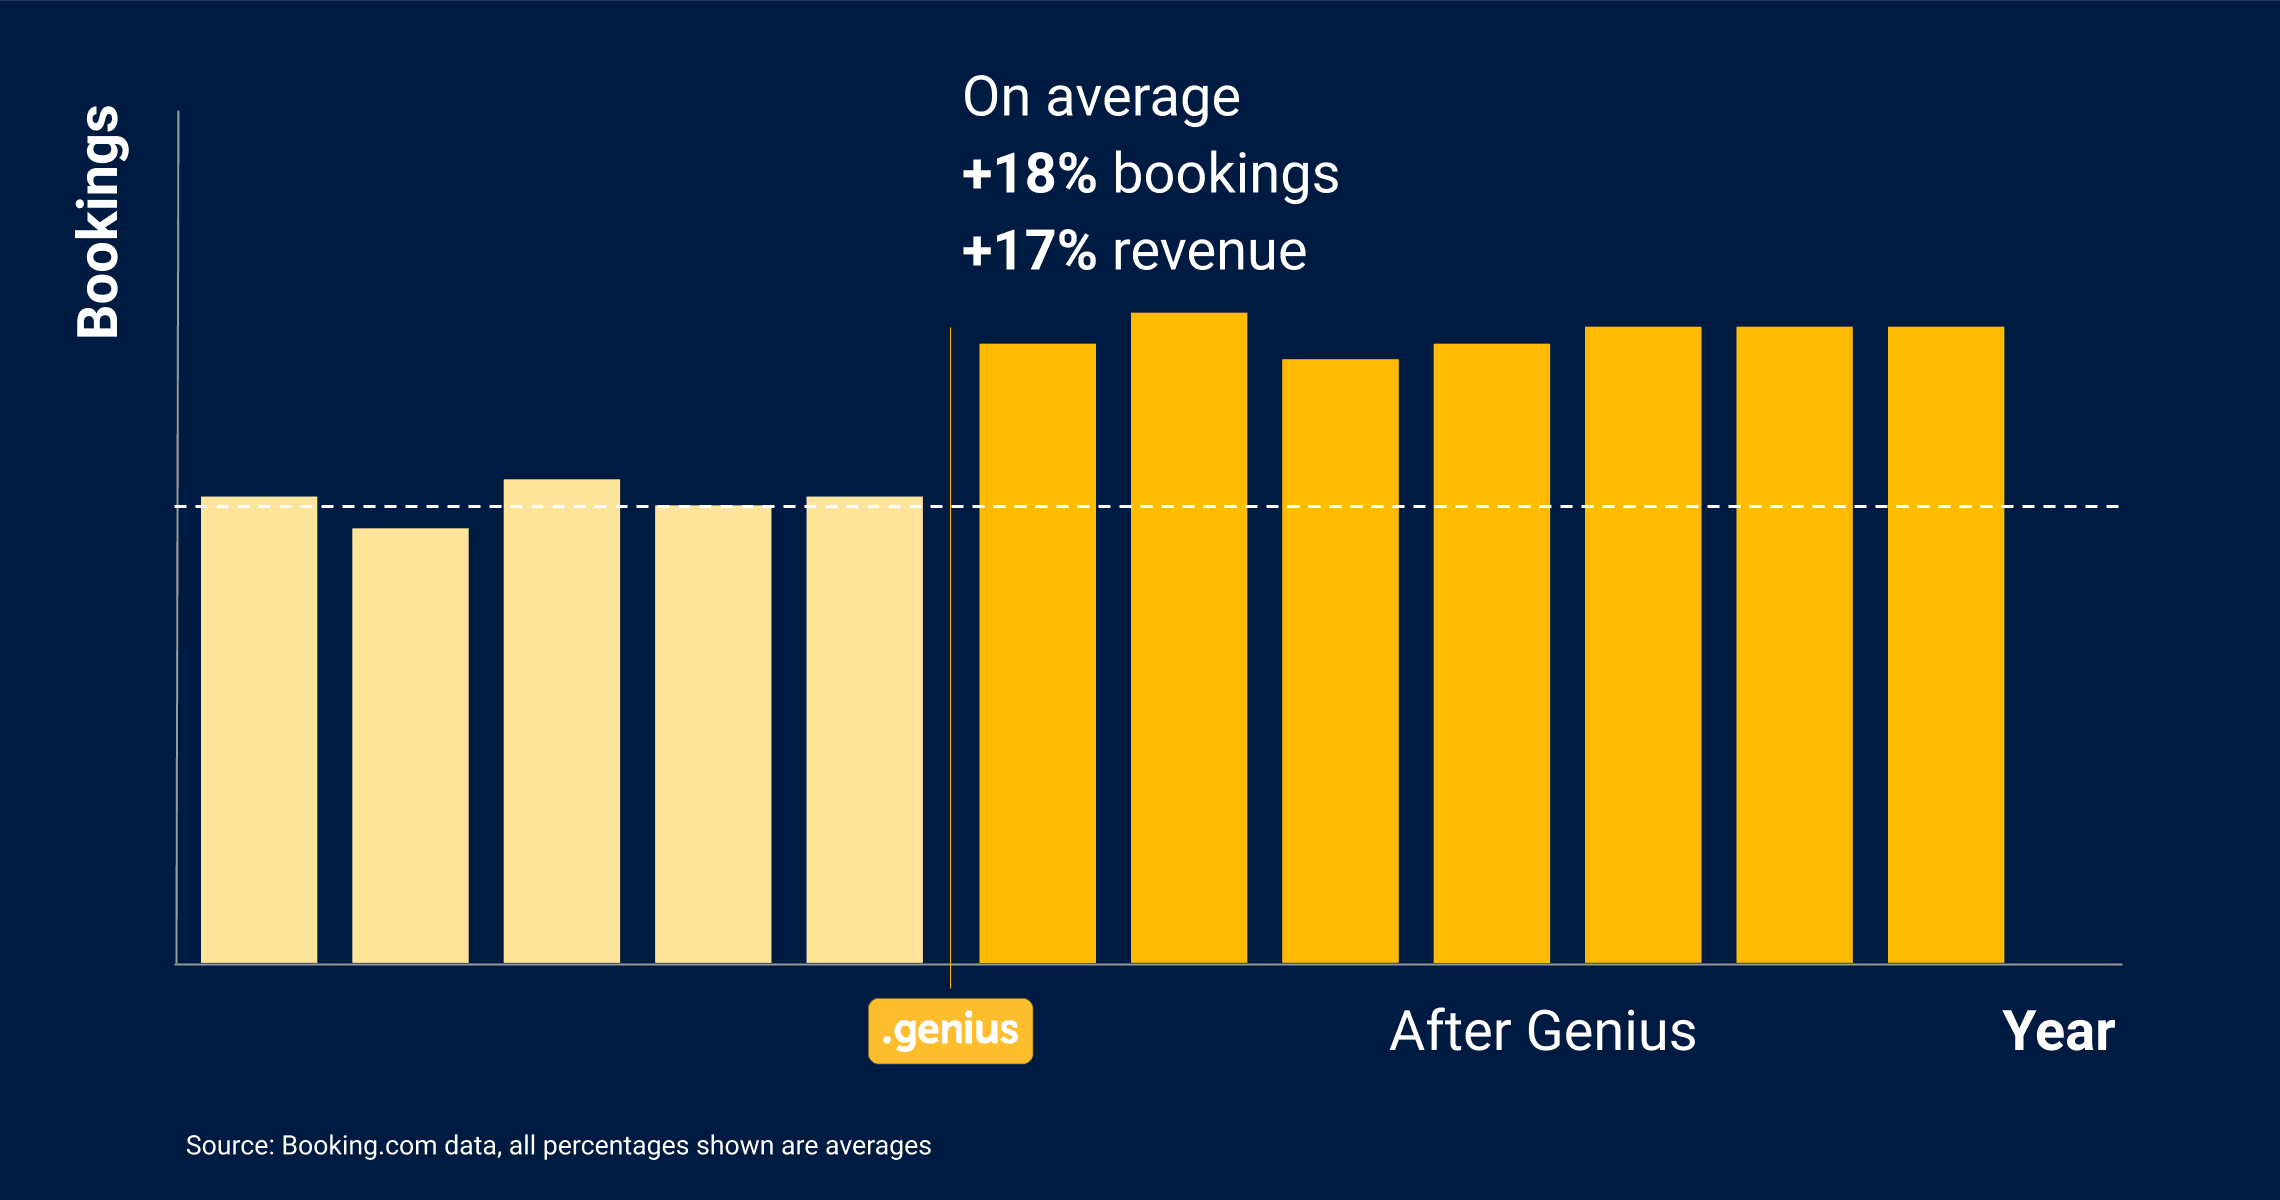 Booking.com statistics of revenue and bookings after joining Genius program